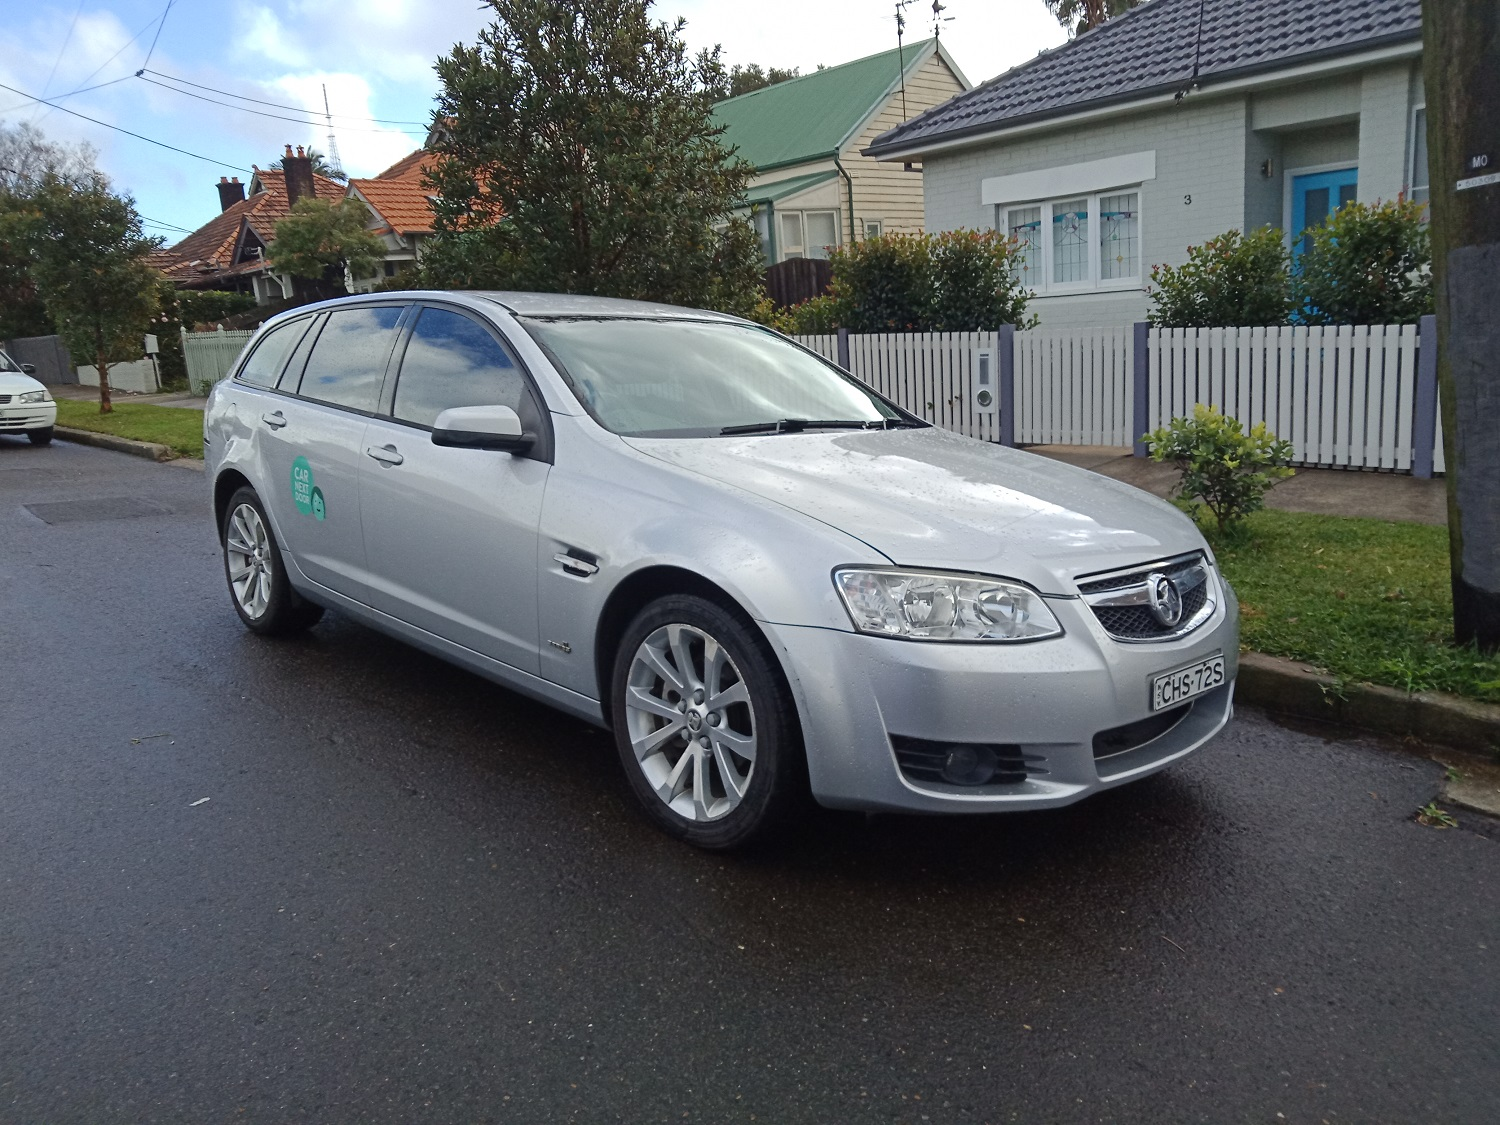 Picture of Sam's 2011 Holden Station wagon